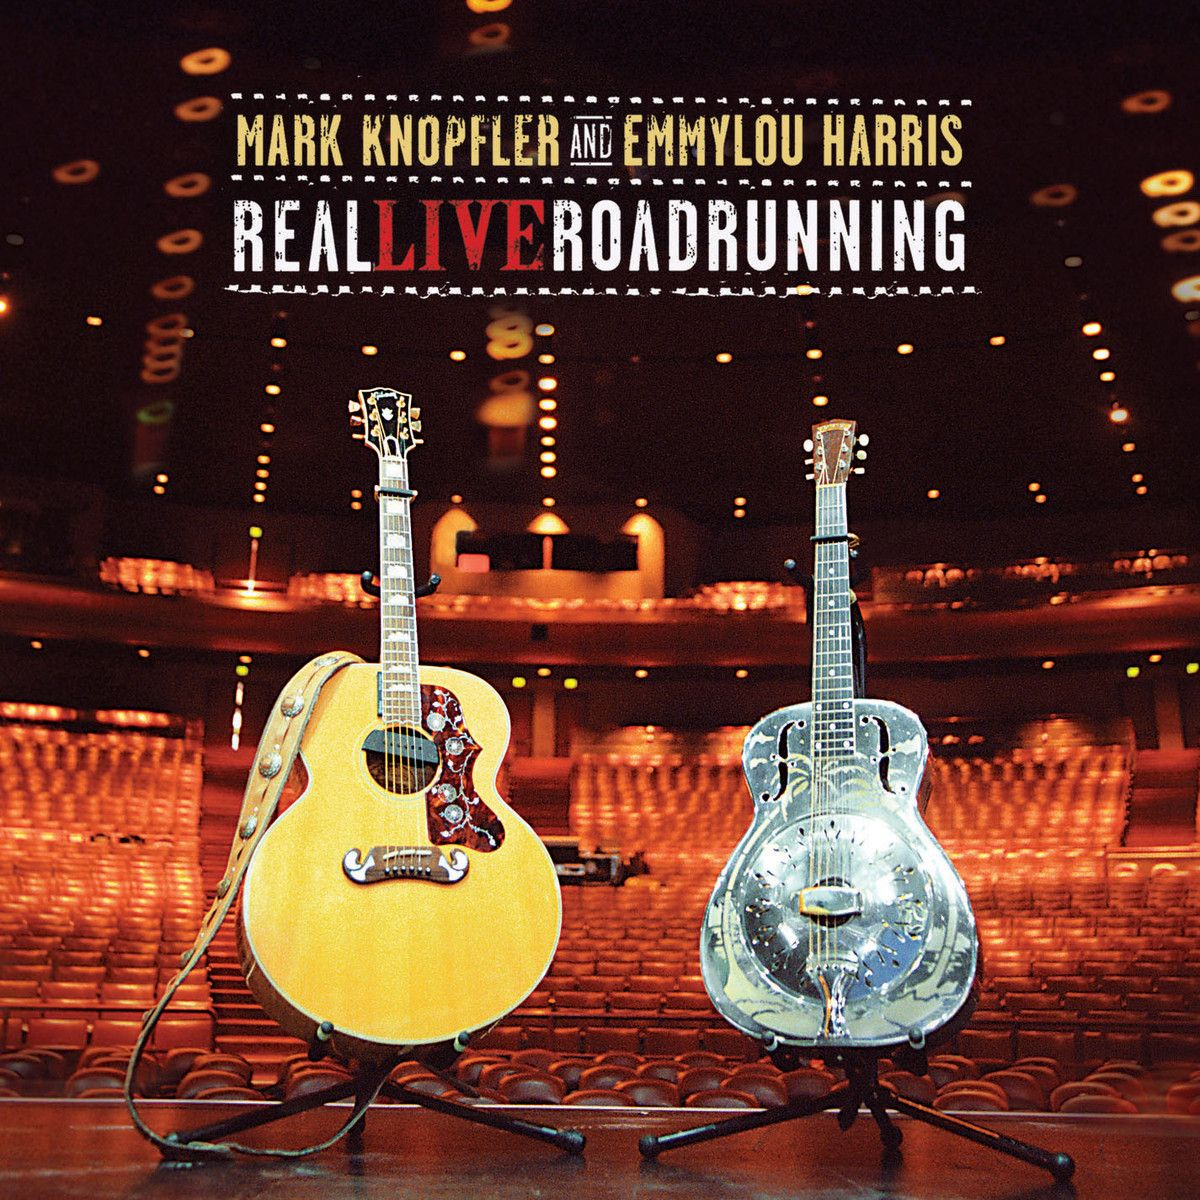 Mark Knopfler - Real Live Roadrunning album cover